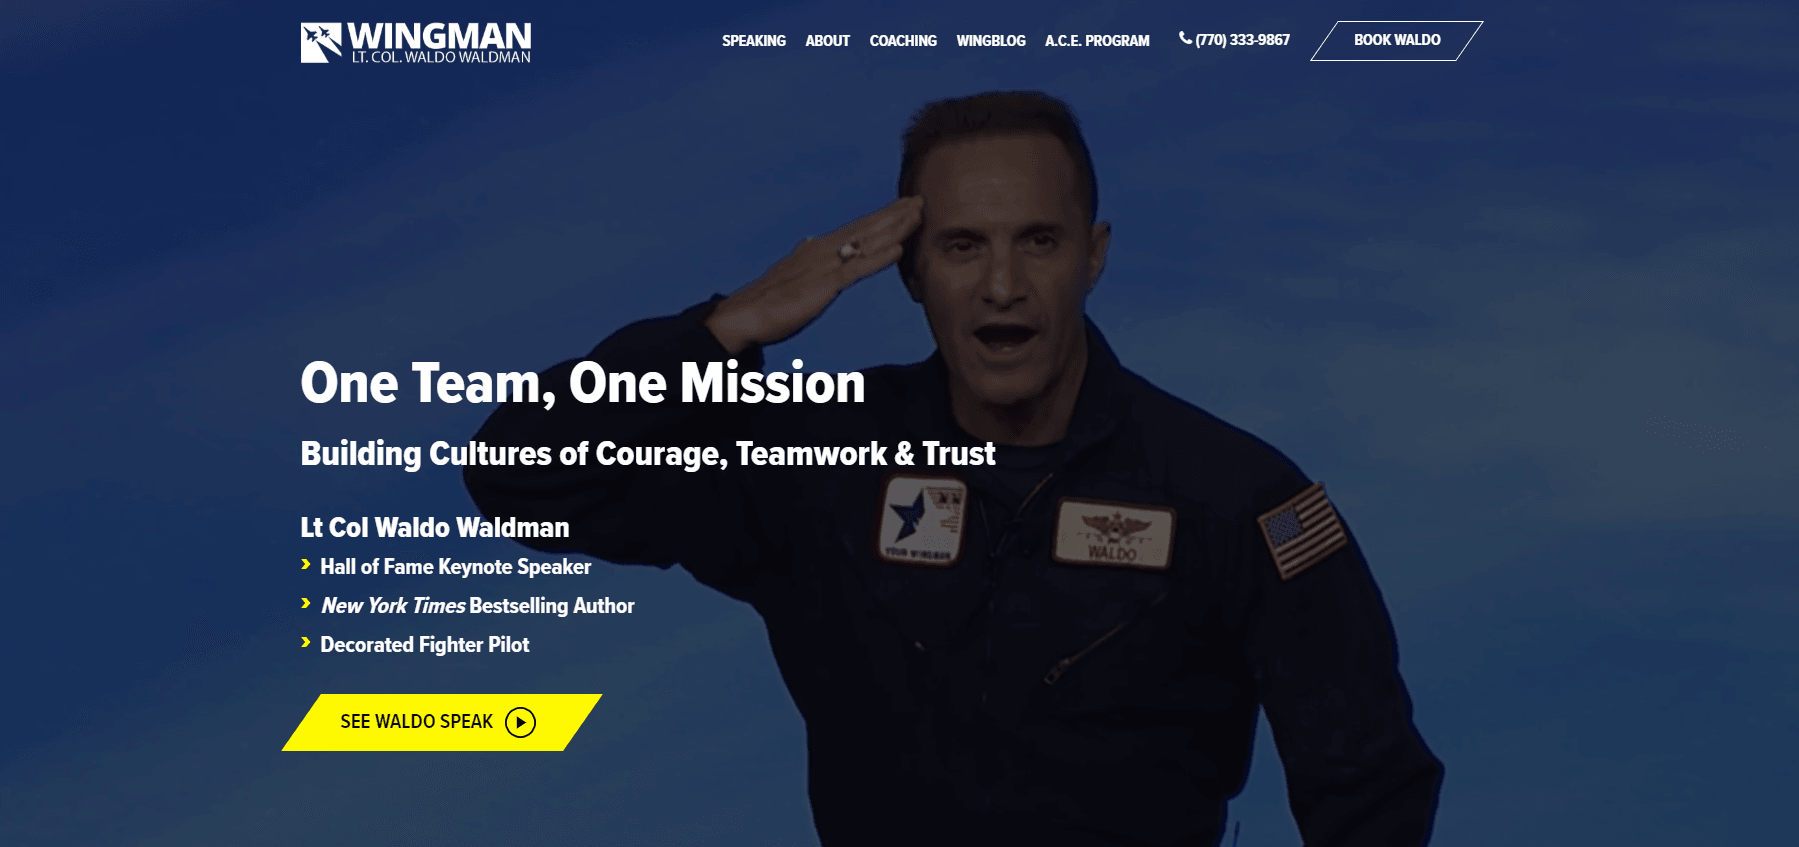 Wingman - Best Speaker Website Nominee